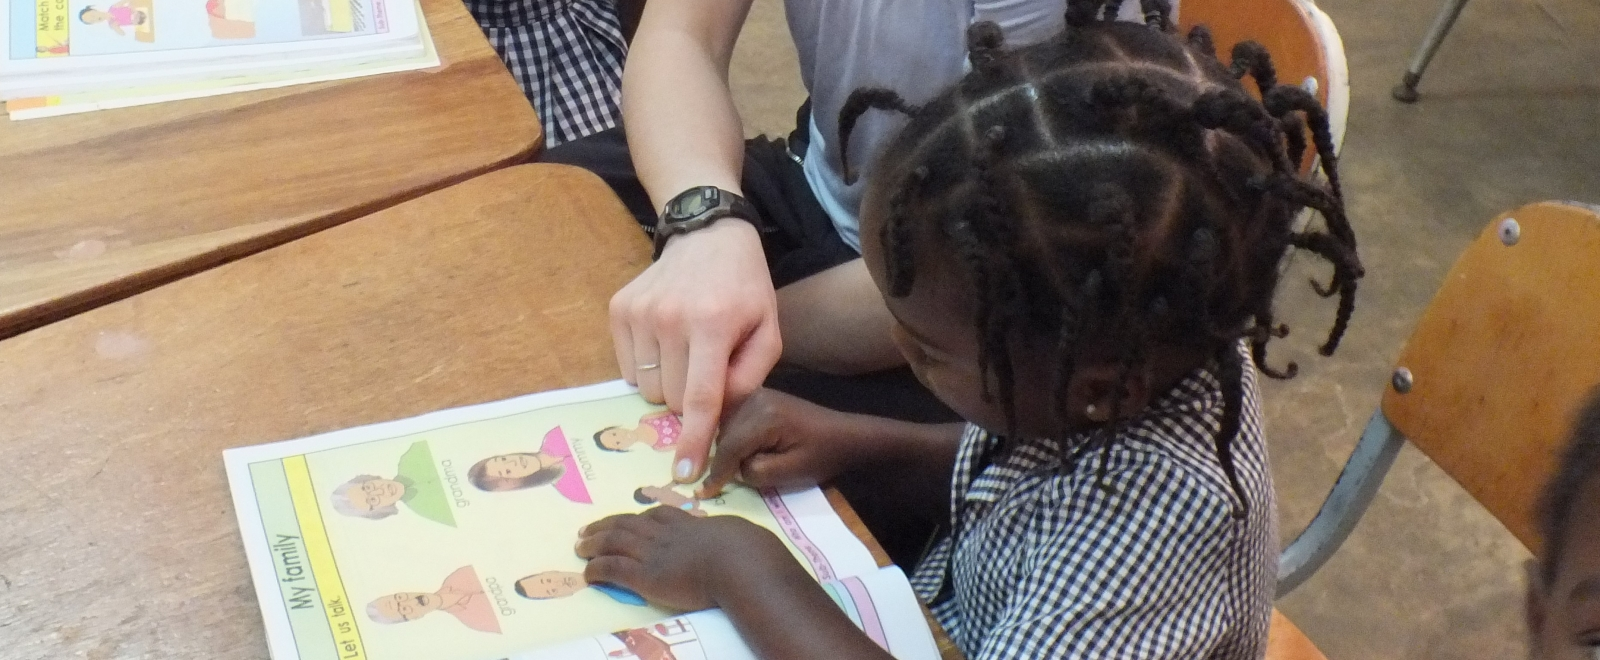 A volunteer works with children on English lessons in Jamaica with a group.